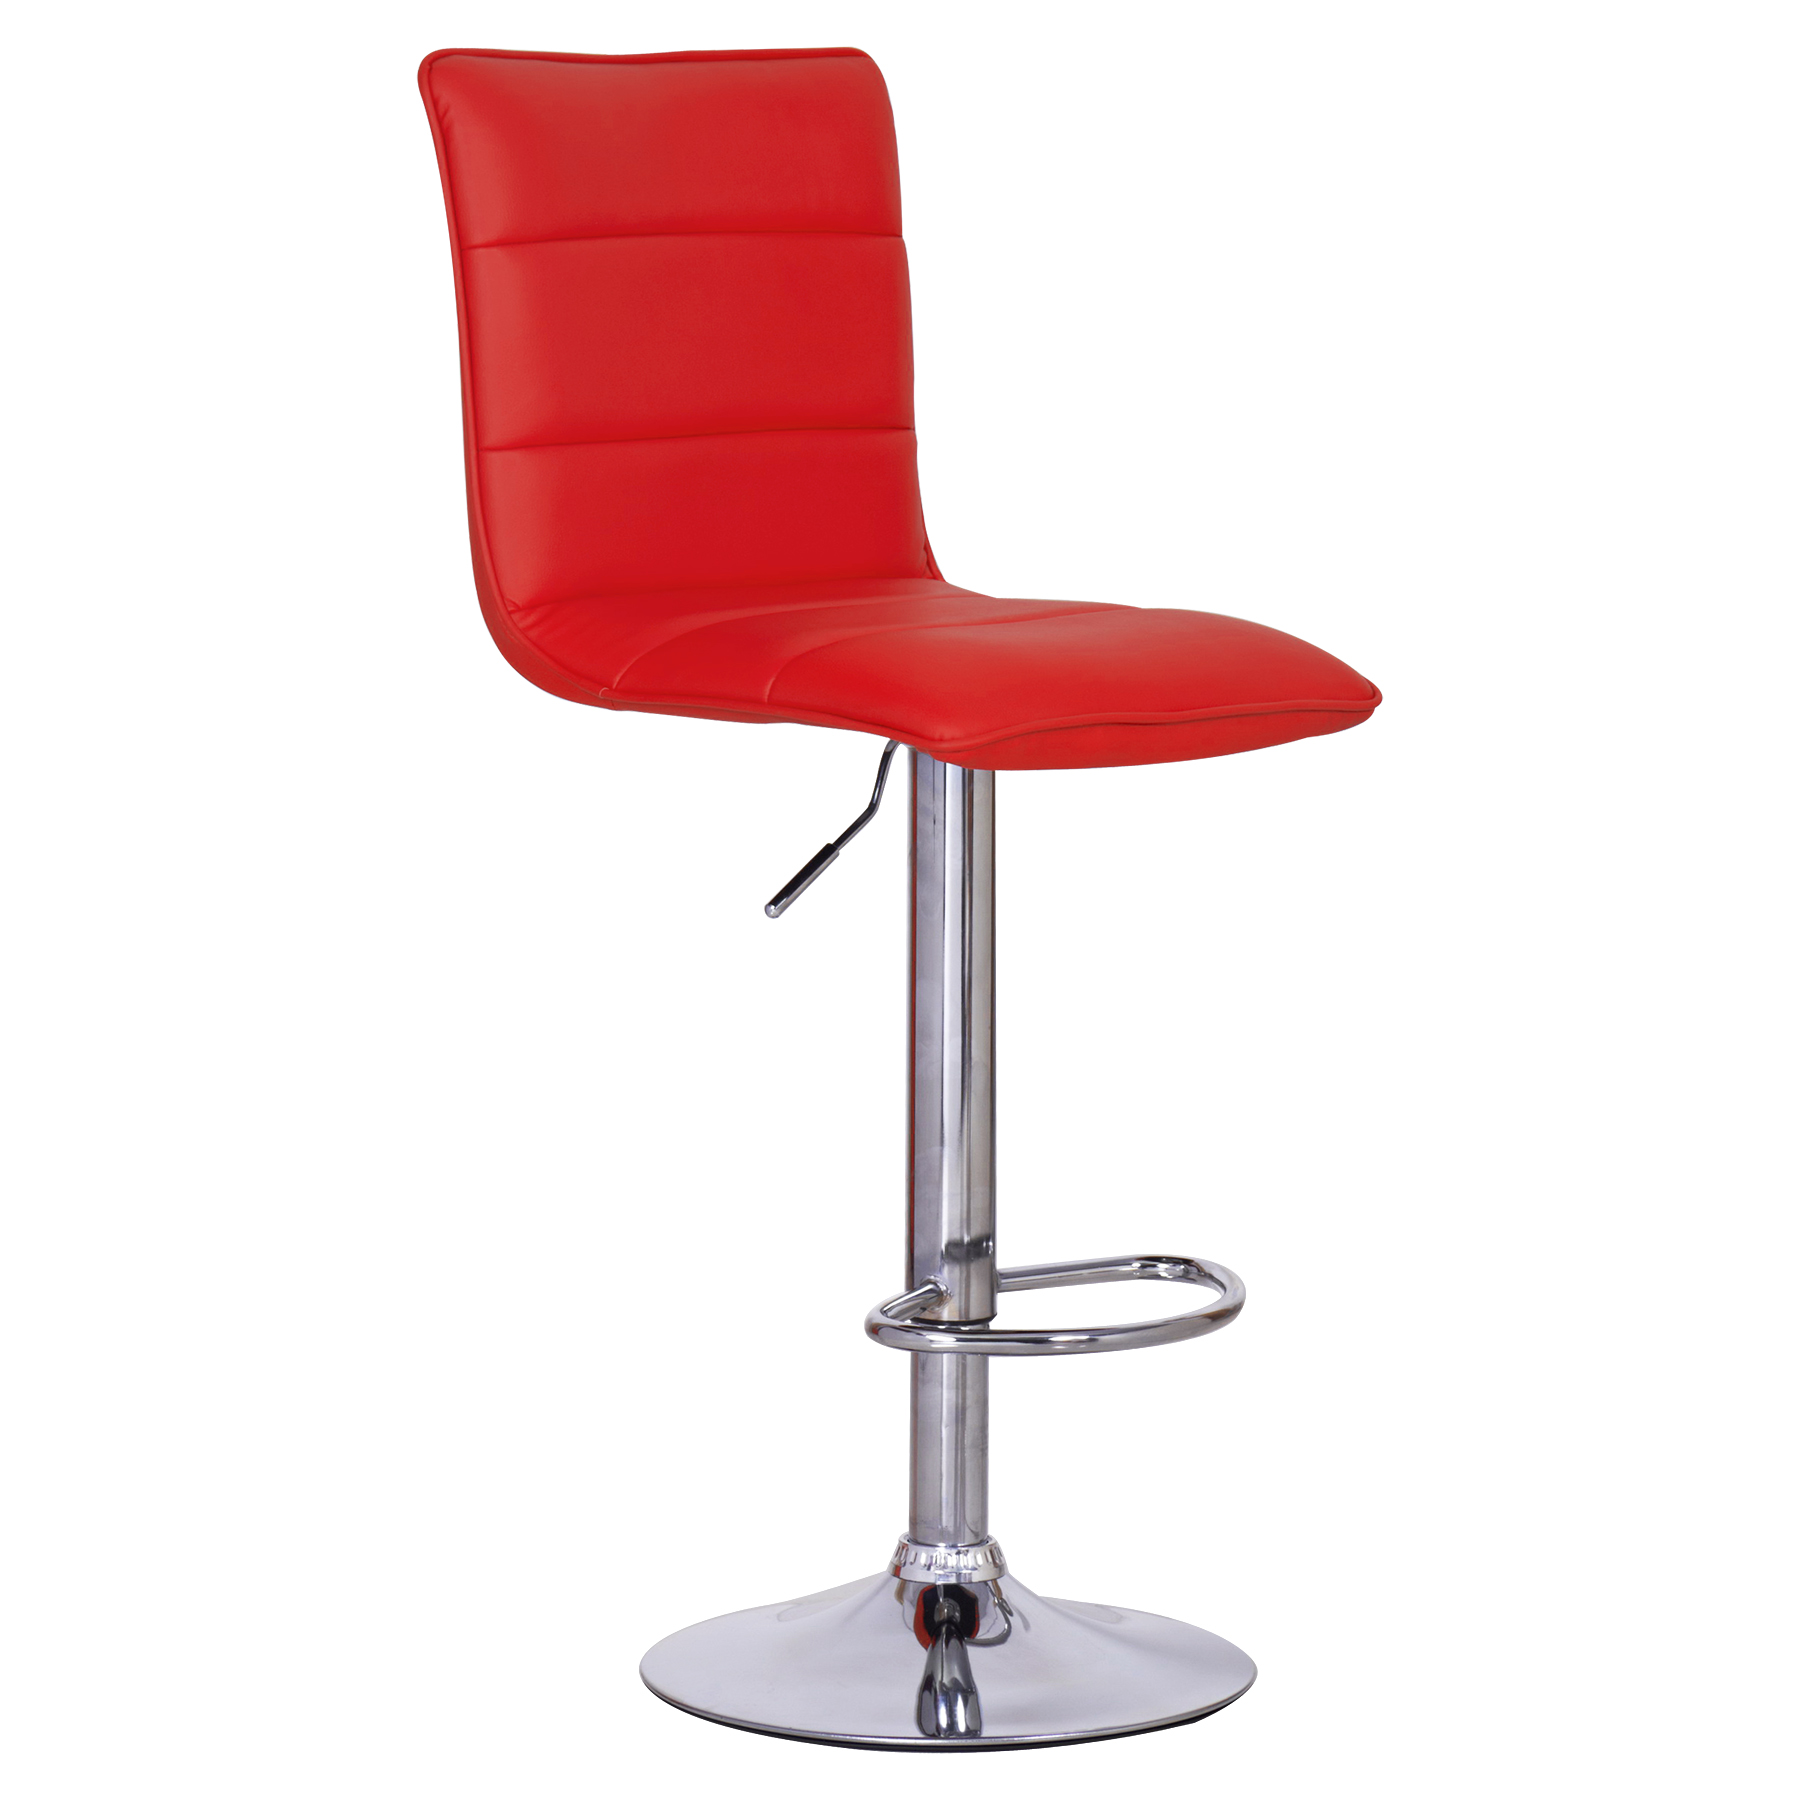 Faux Leather Bar Stools Swivel Bar Stool Kitchen Breakfast